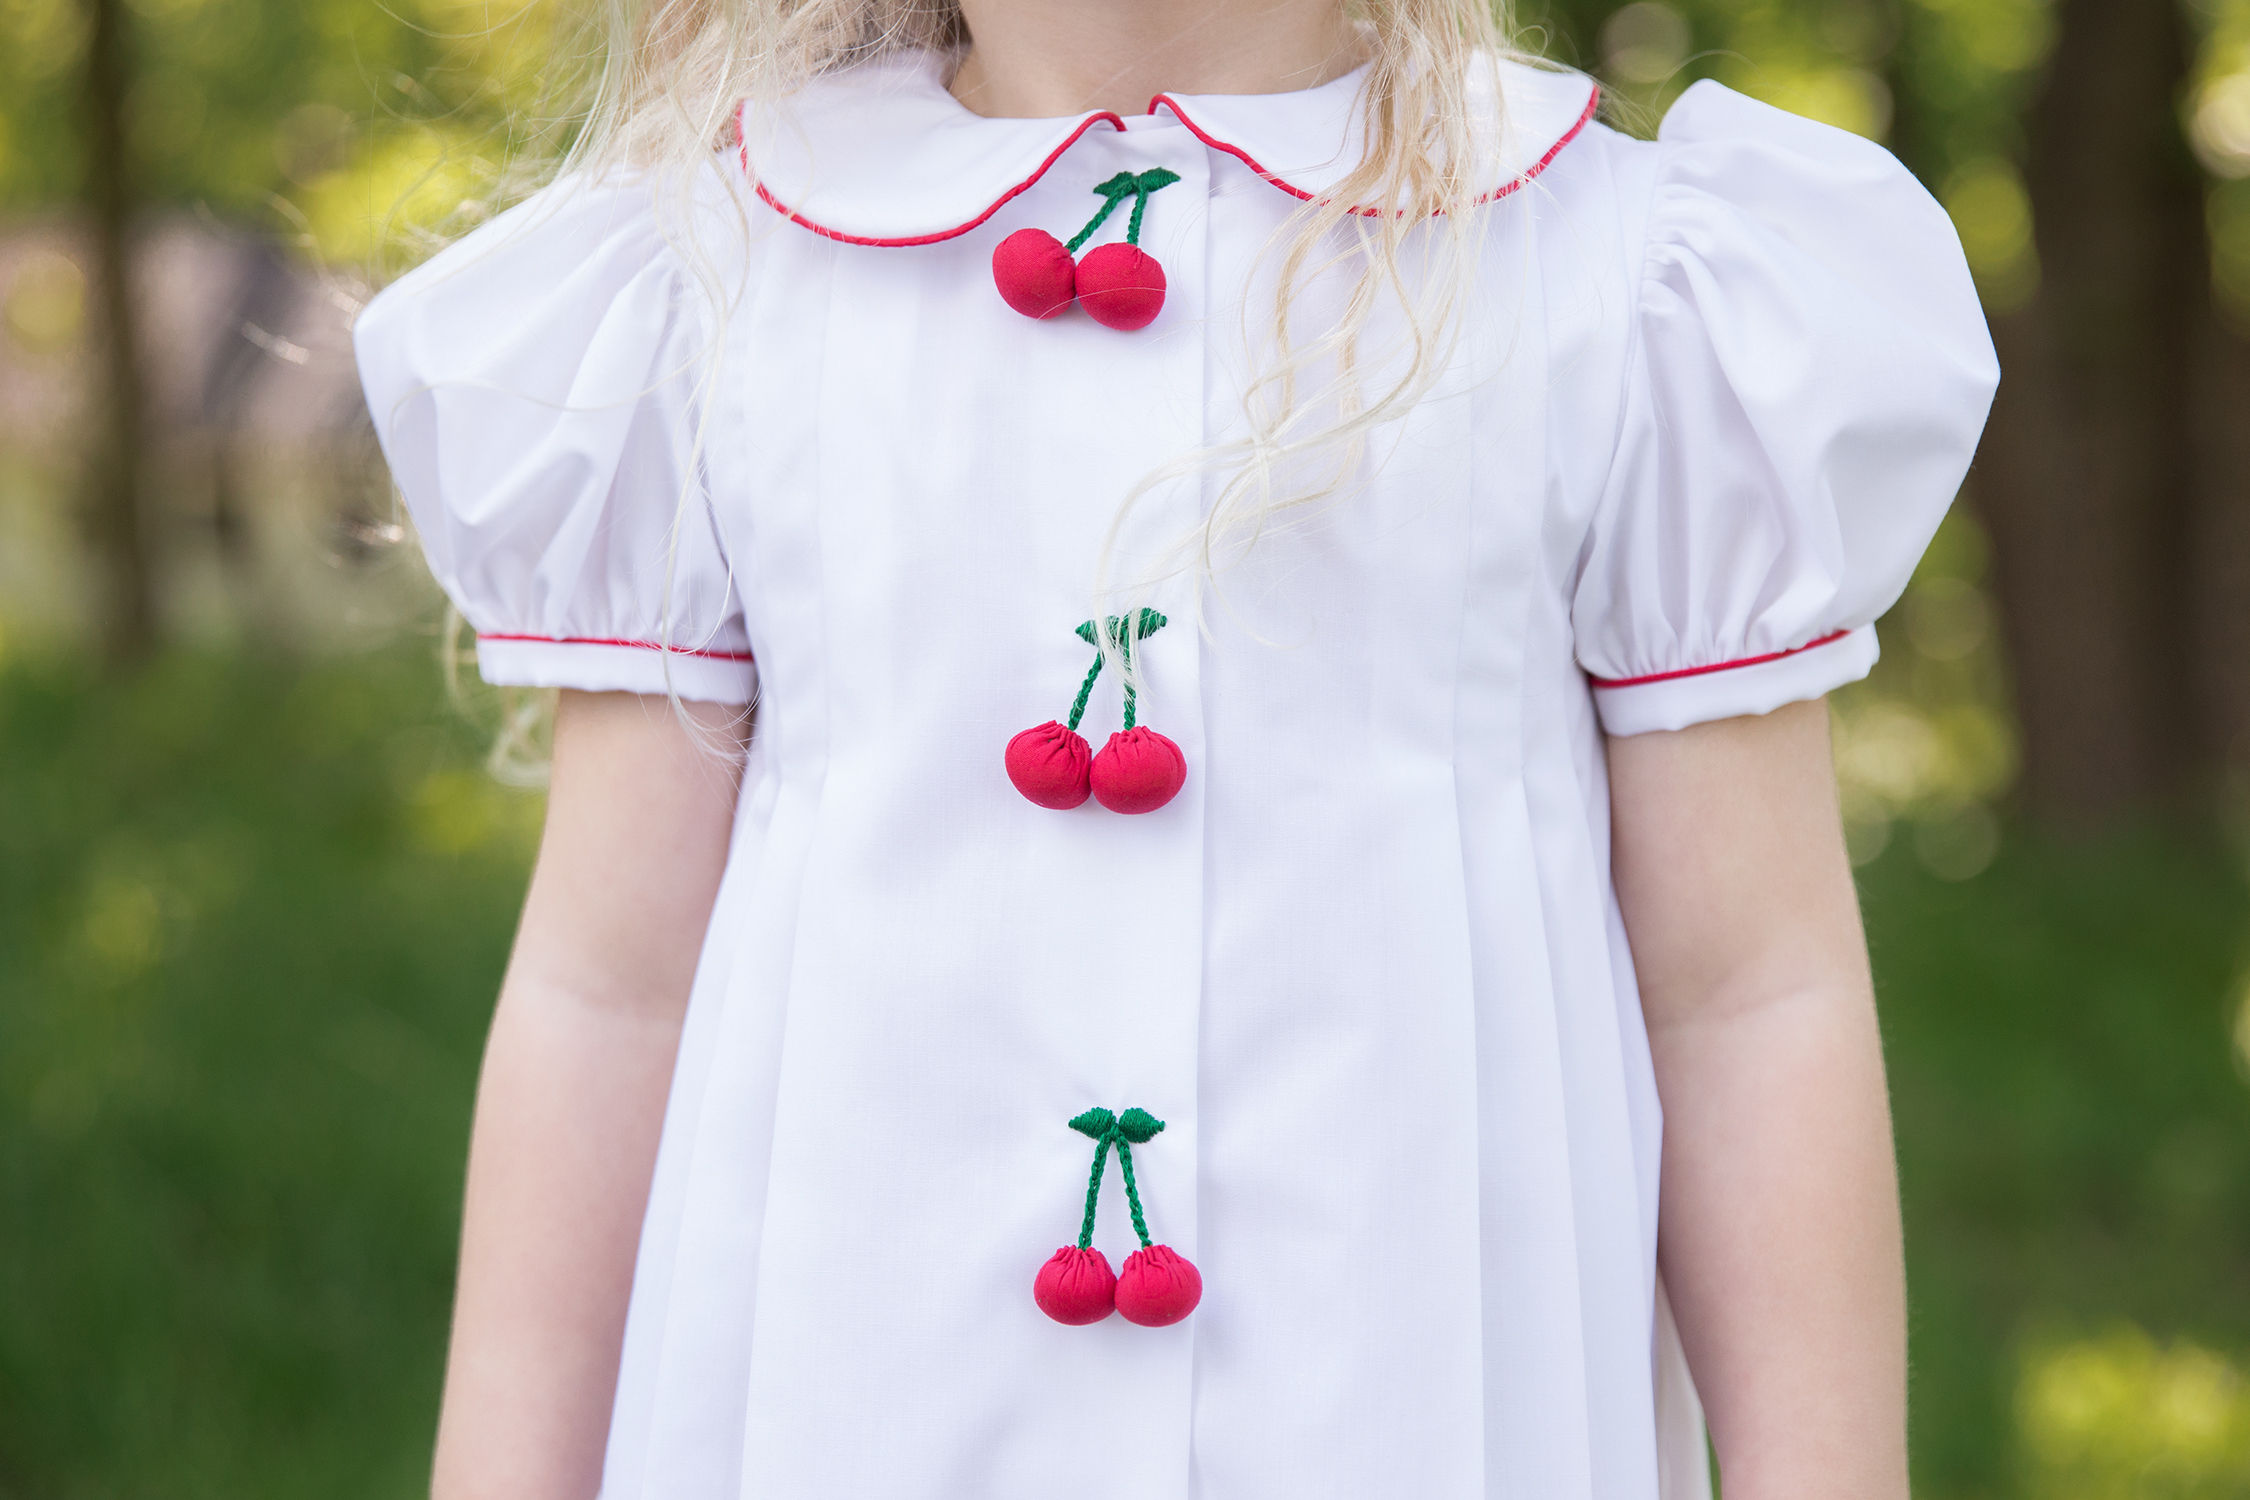 Little girl's special dress with cherries | St. Louis Family Photographer